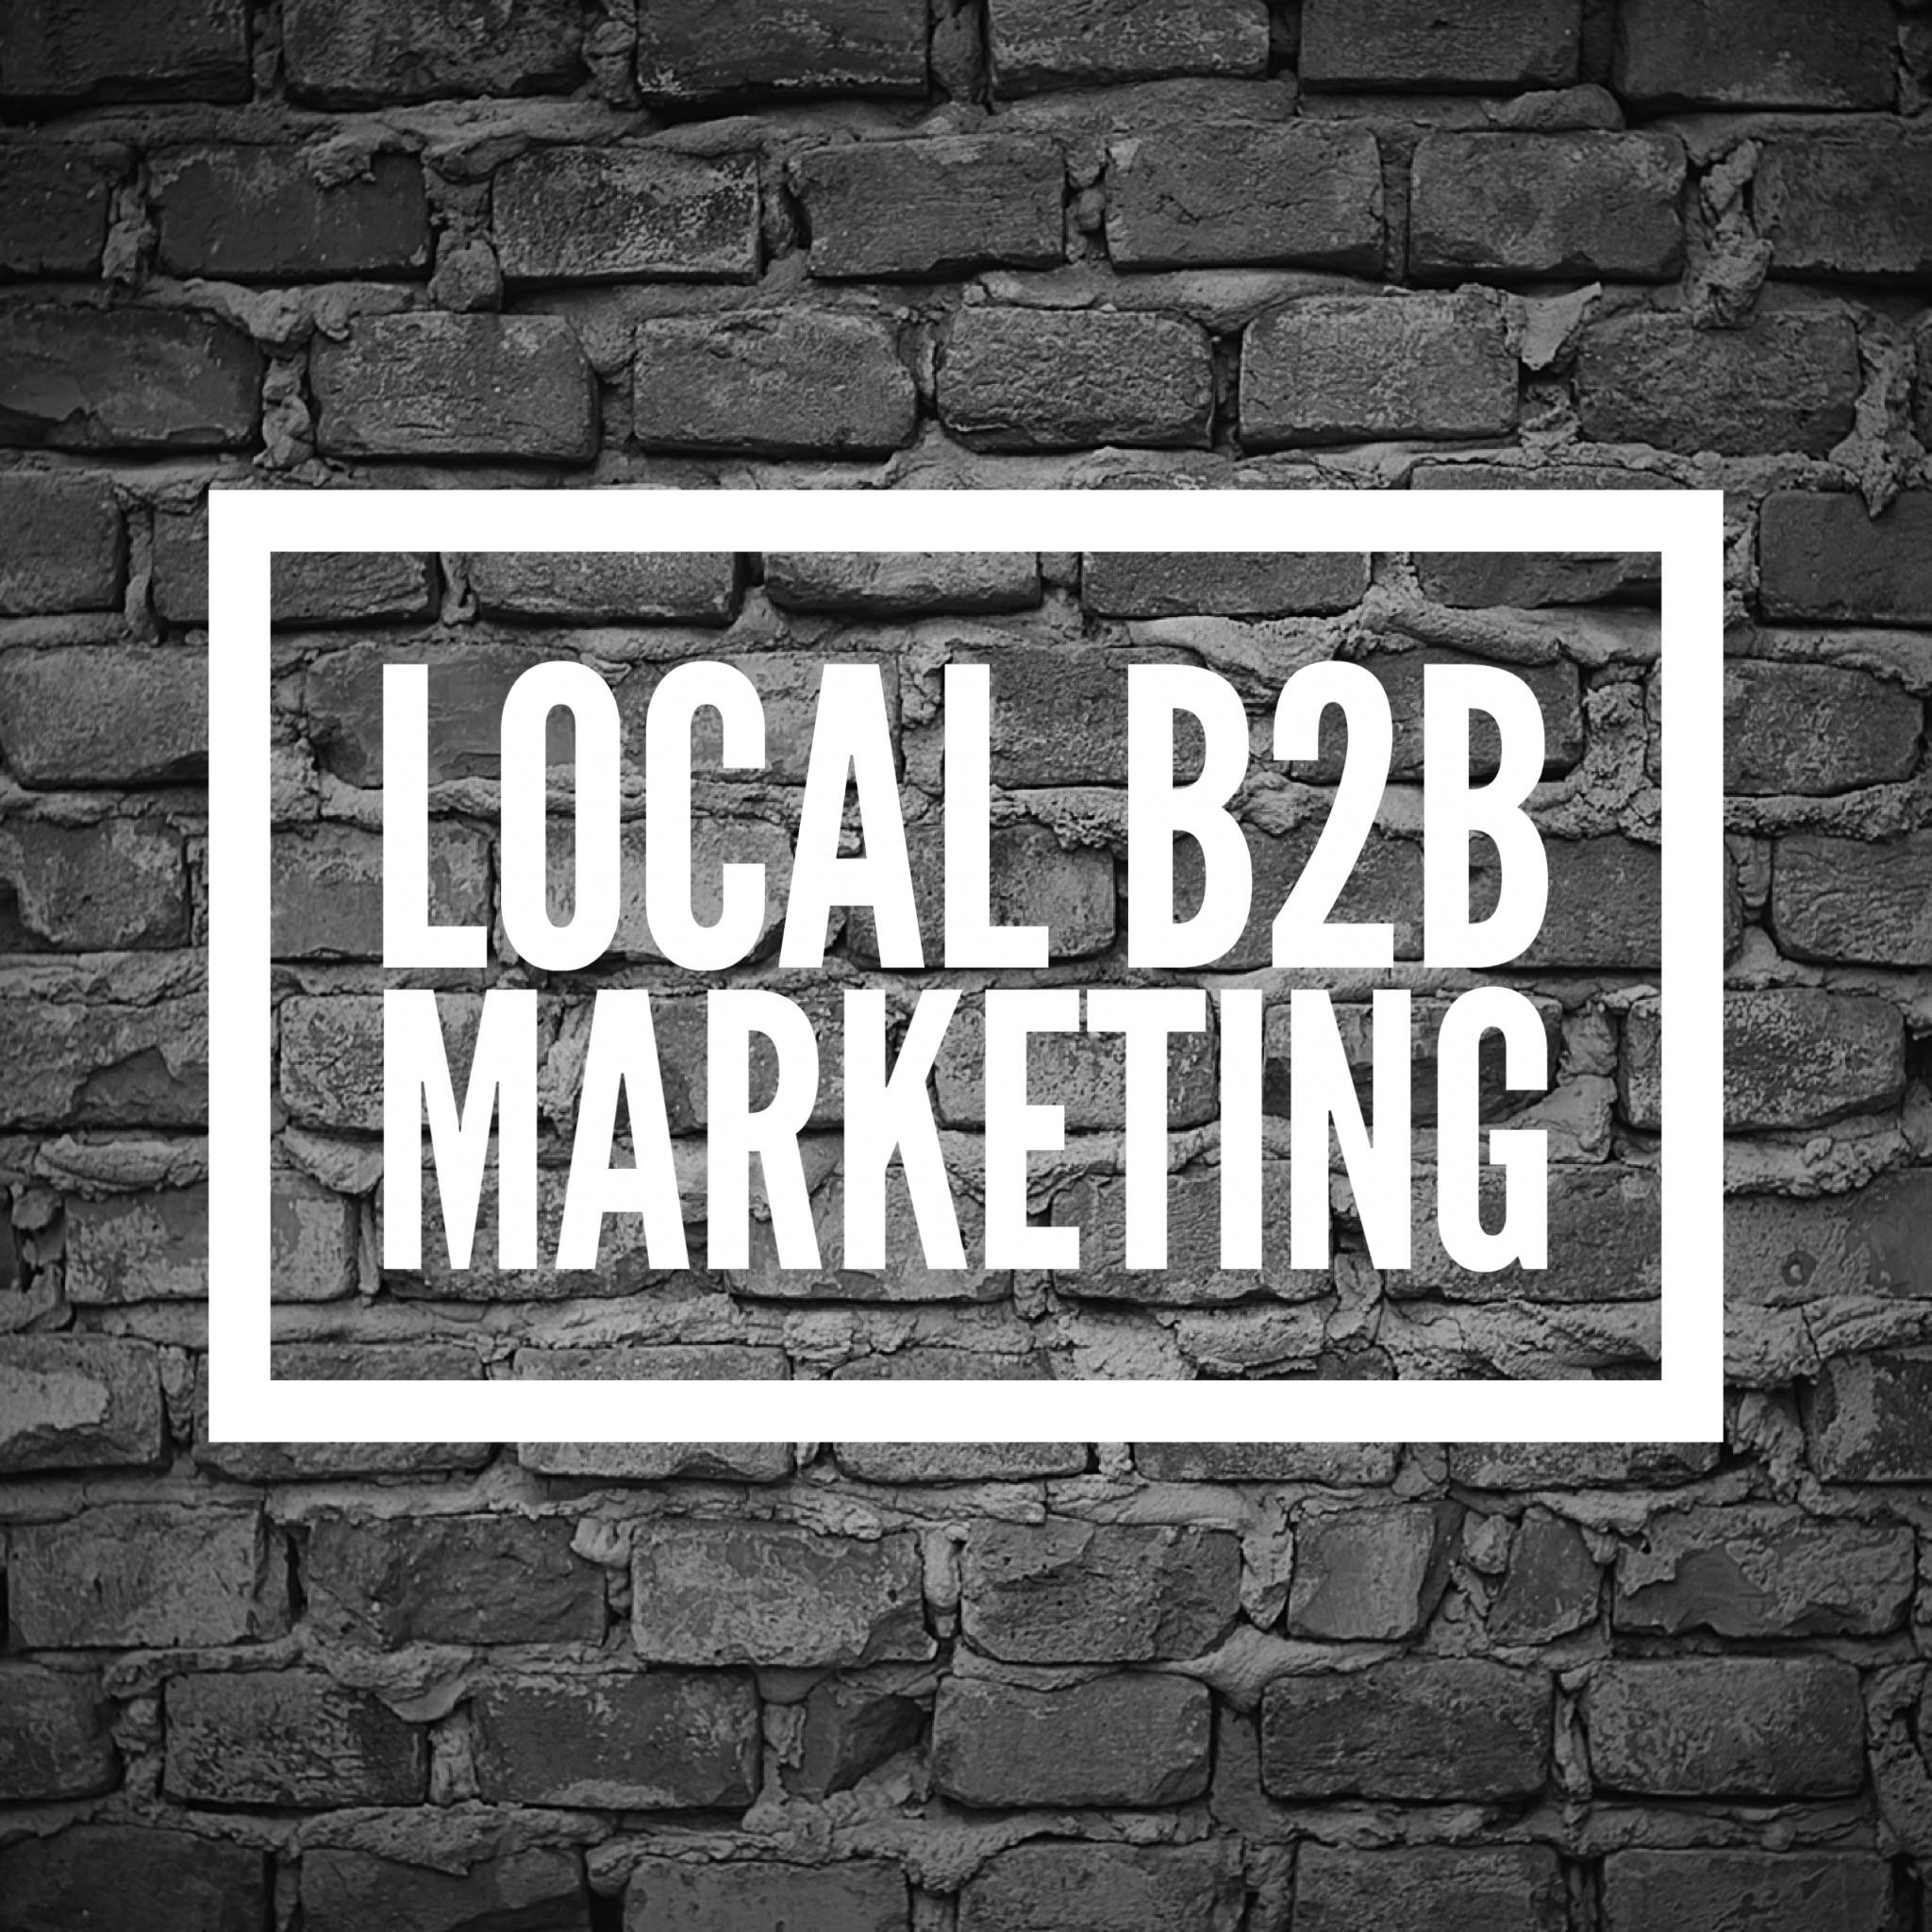 Local B2B Marketing and B2B Copywriting